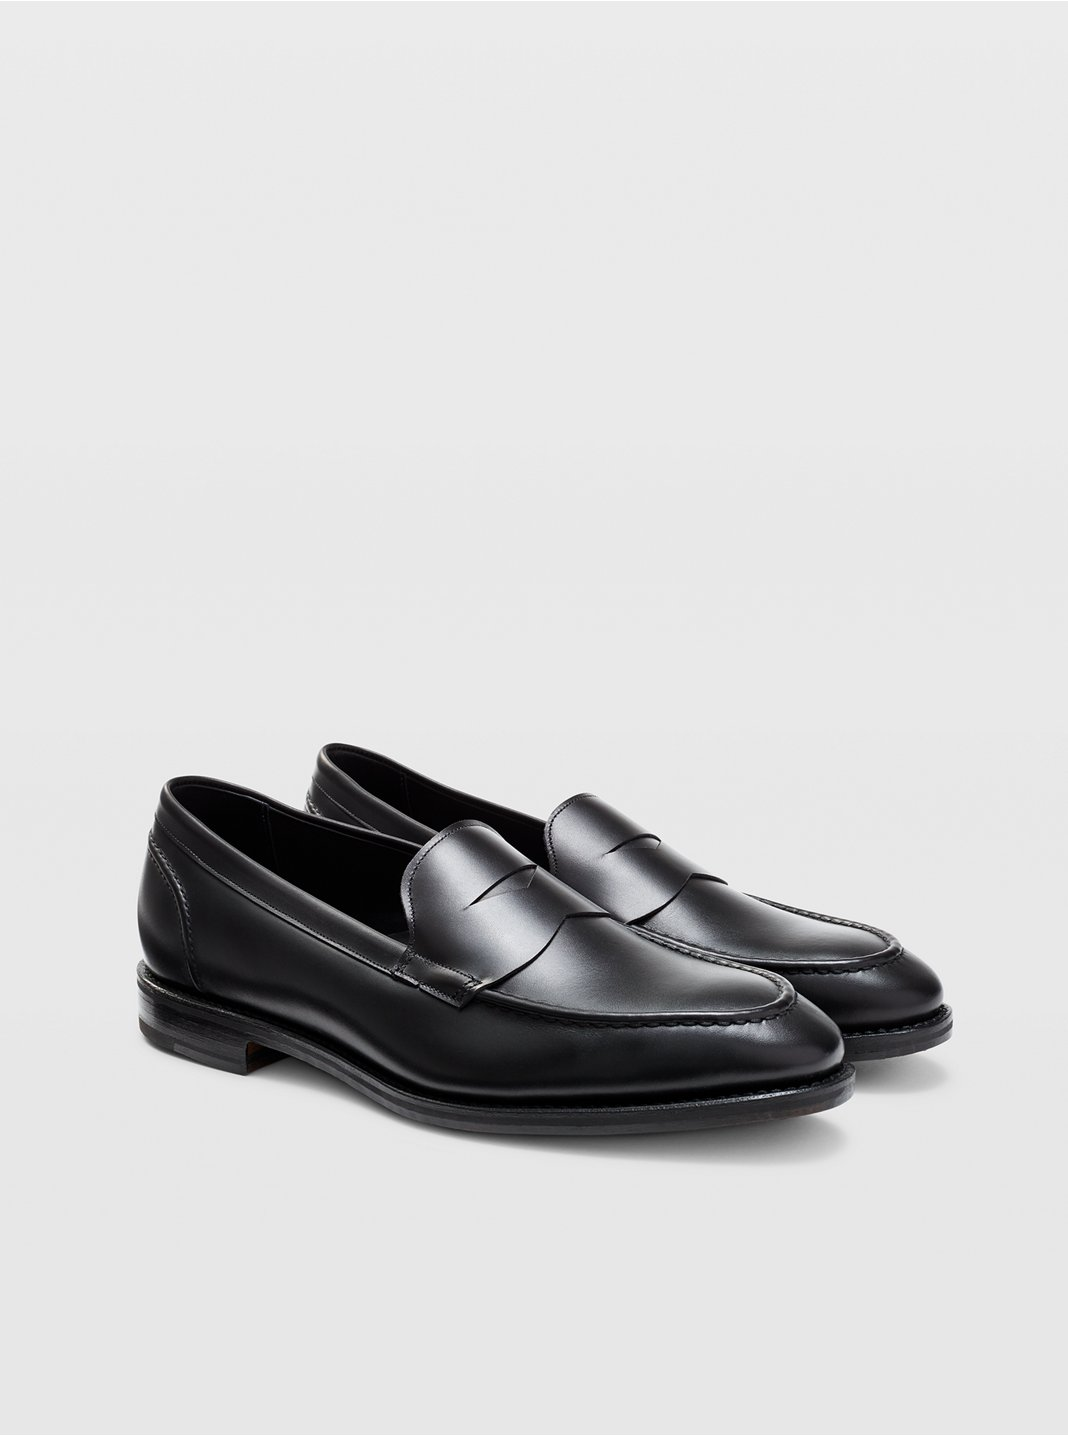 Allen Edmonds Mercer Street